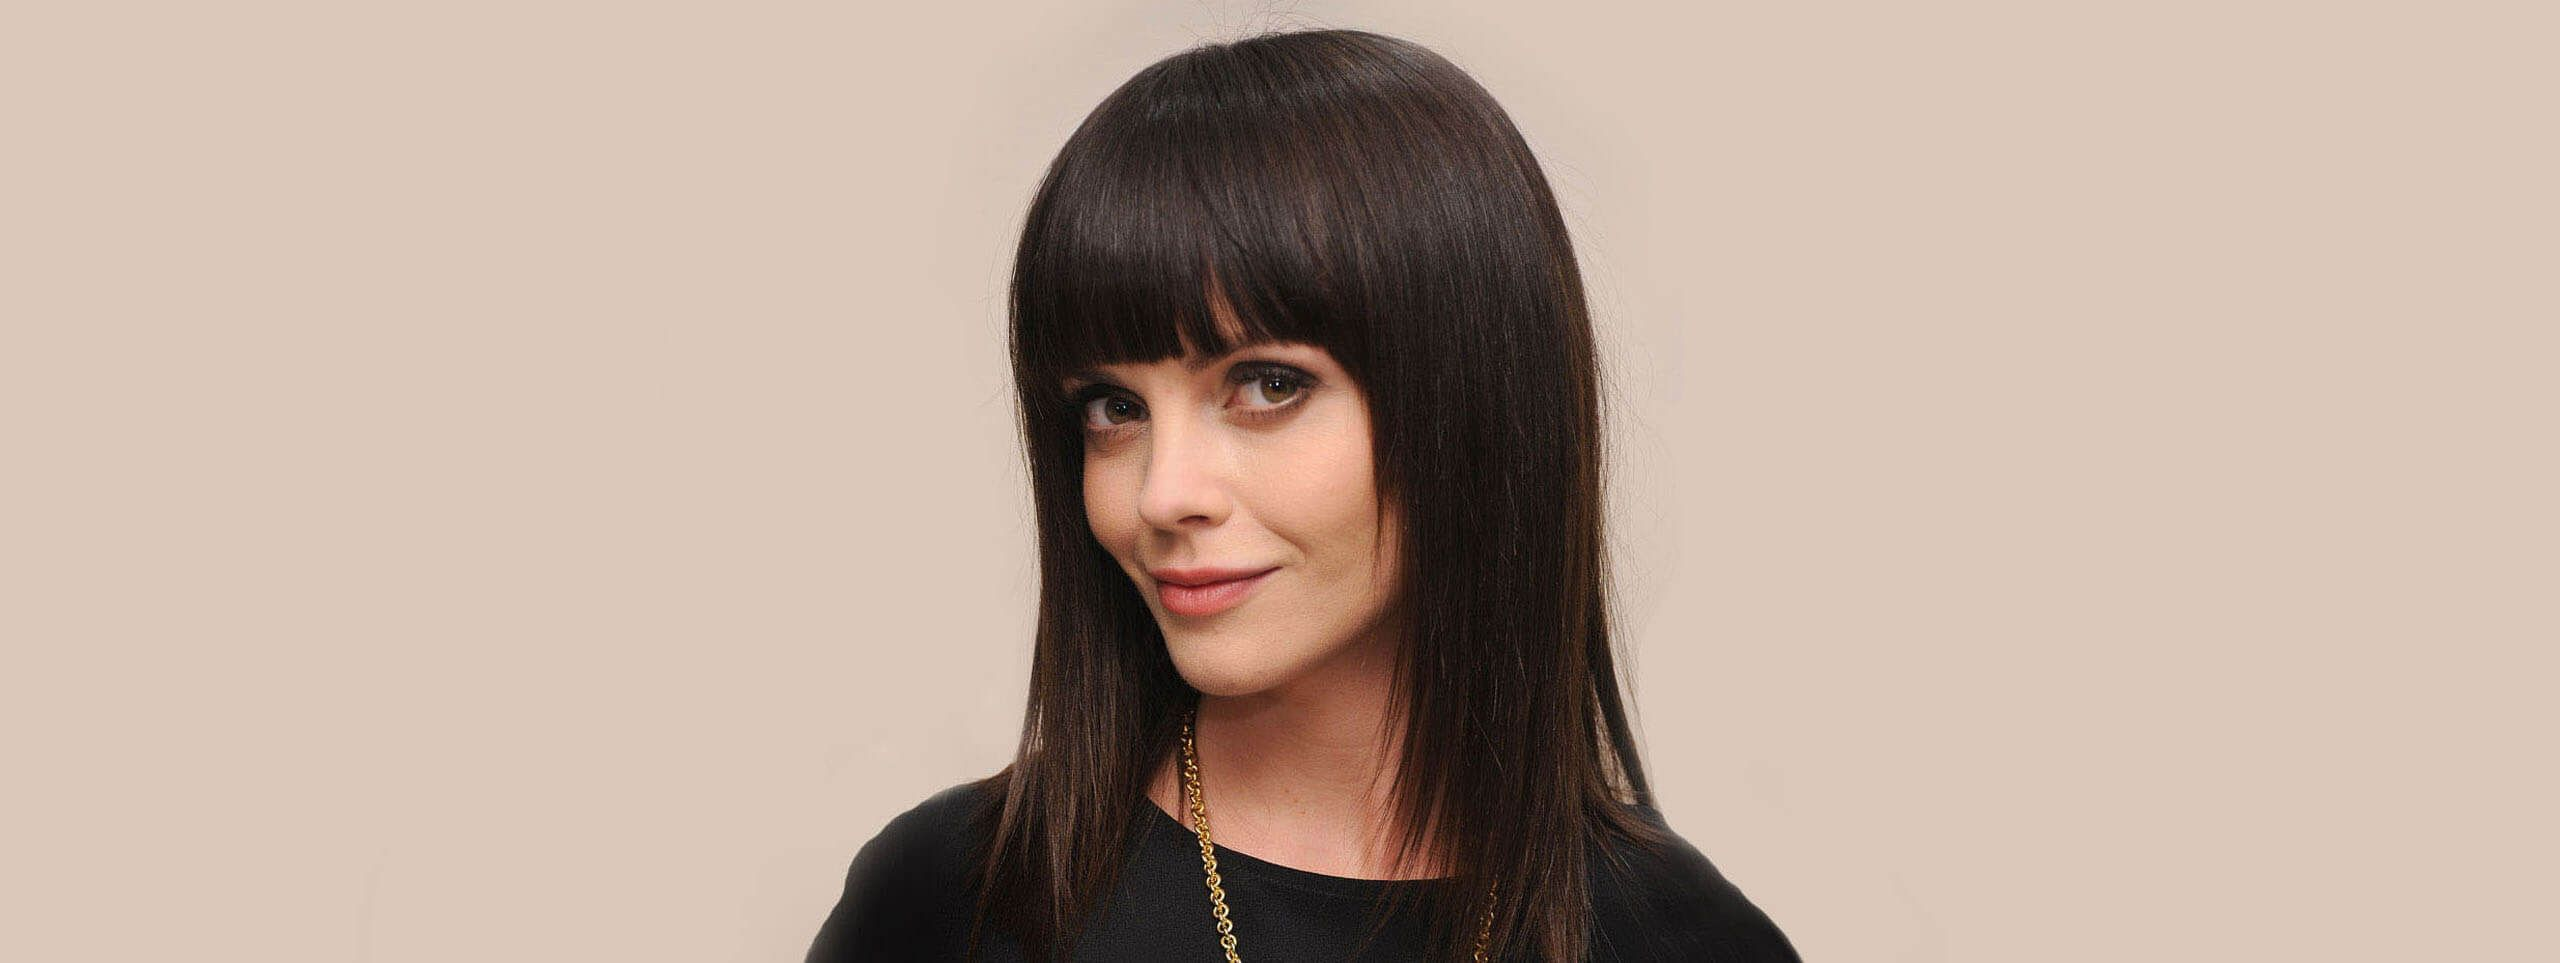 Brunette woman with layered hairstyle and full fringe